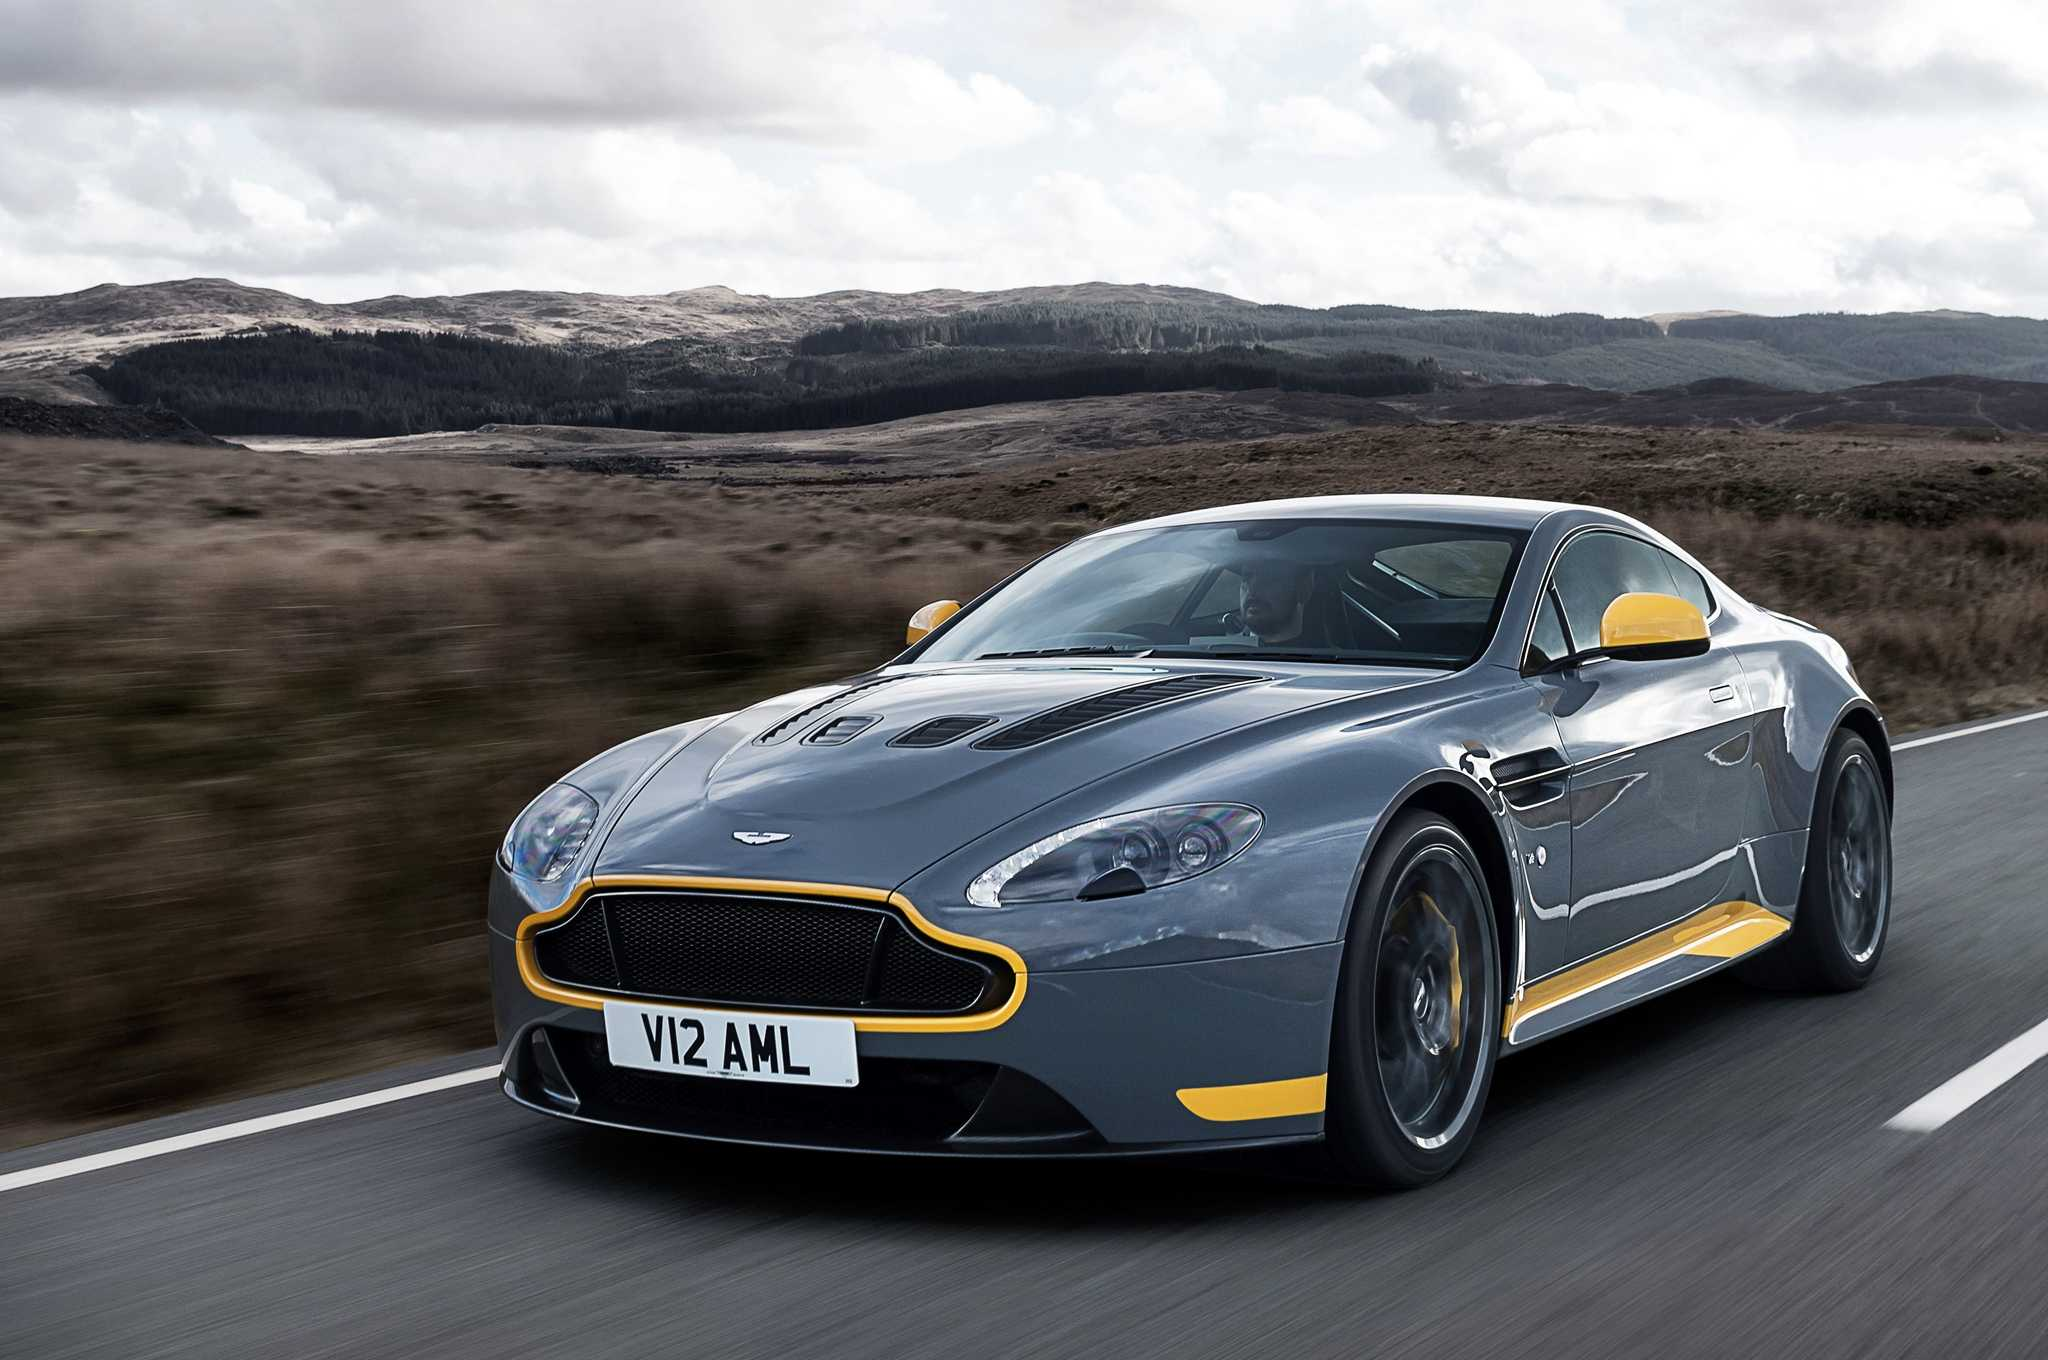 2017 Aston Martin V8 Vantage GTS Limited Edition is Priced at $137,820